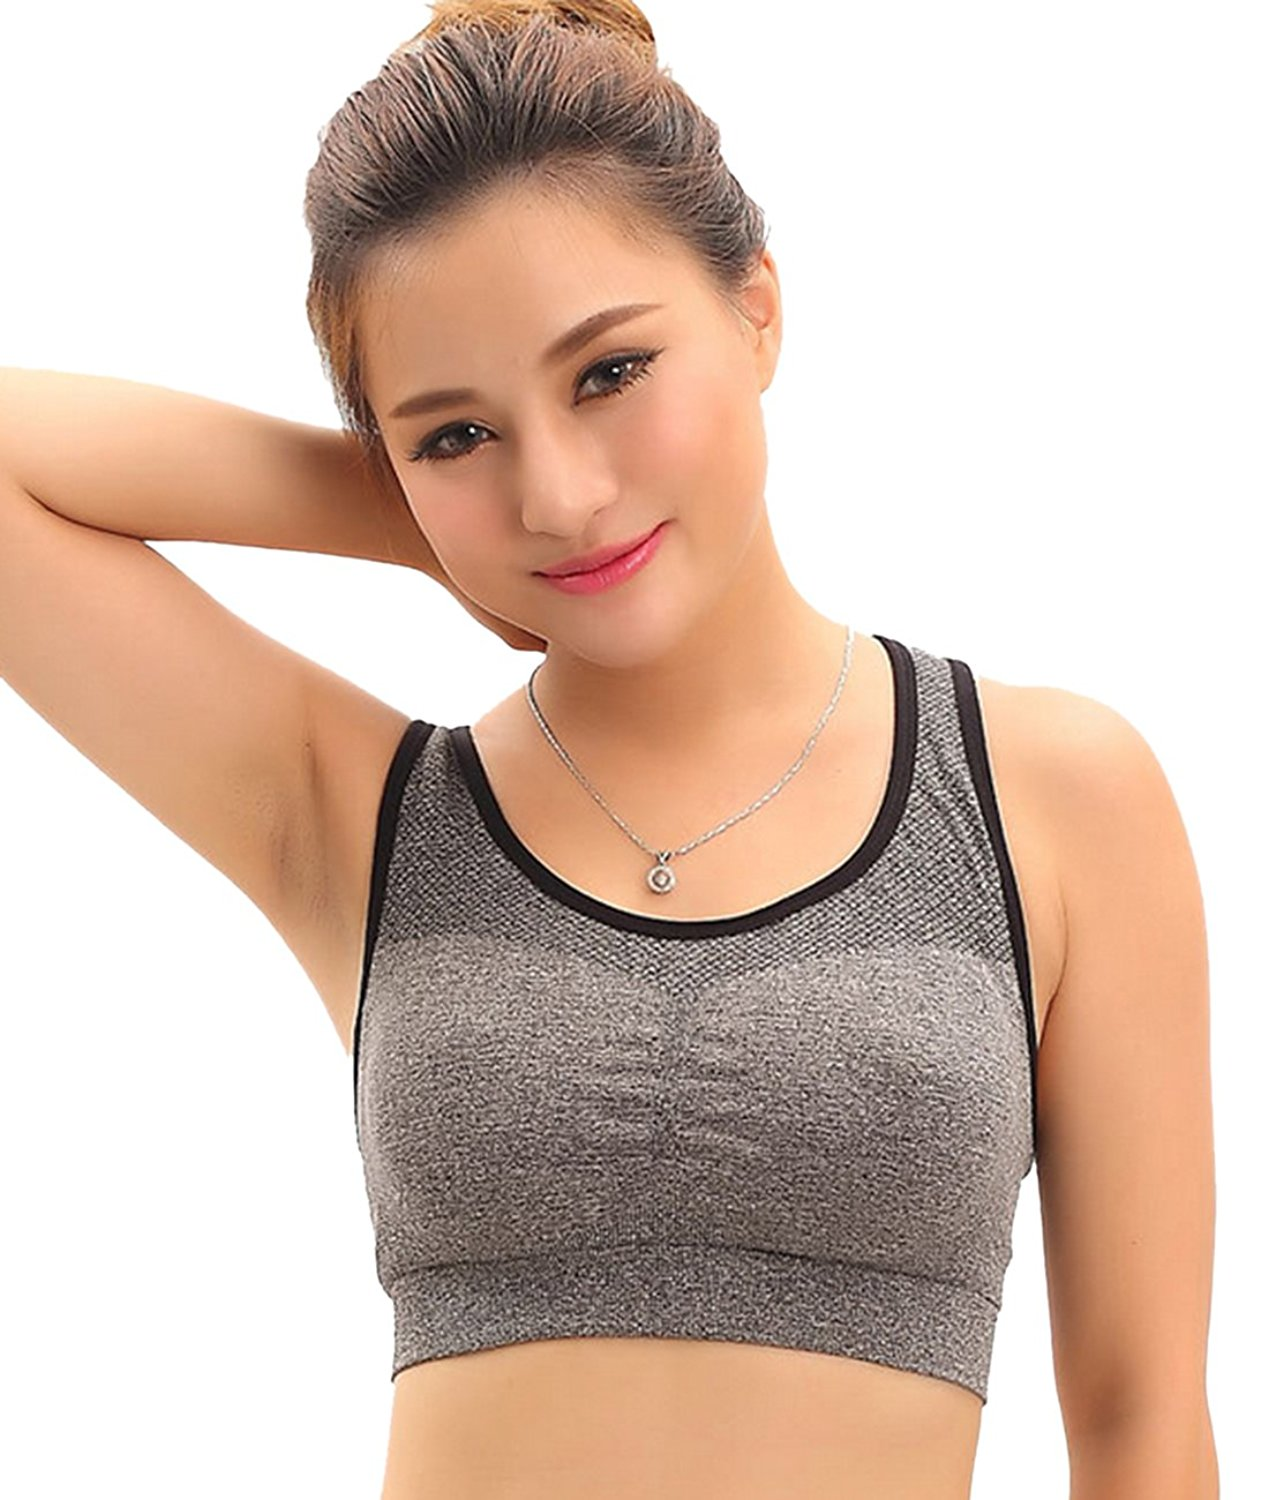 b473ce3dab Get Quotations · VICGGHDH Women s Seamless Quick-Drying Sport Bras Workout  Fitness Removable Pads Bras